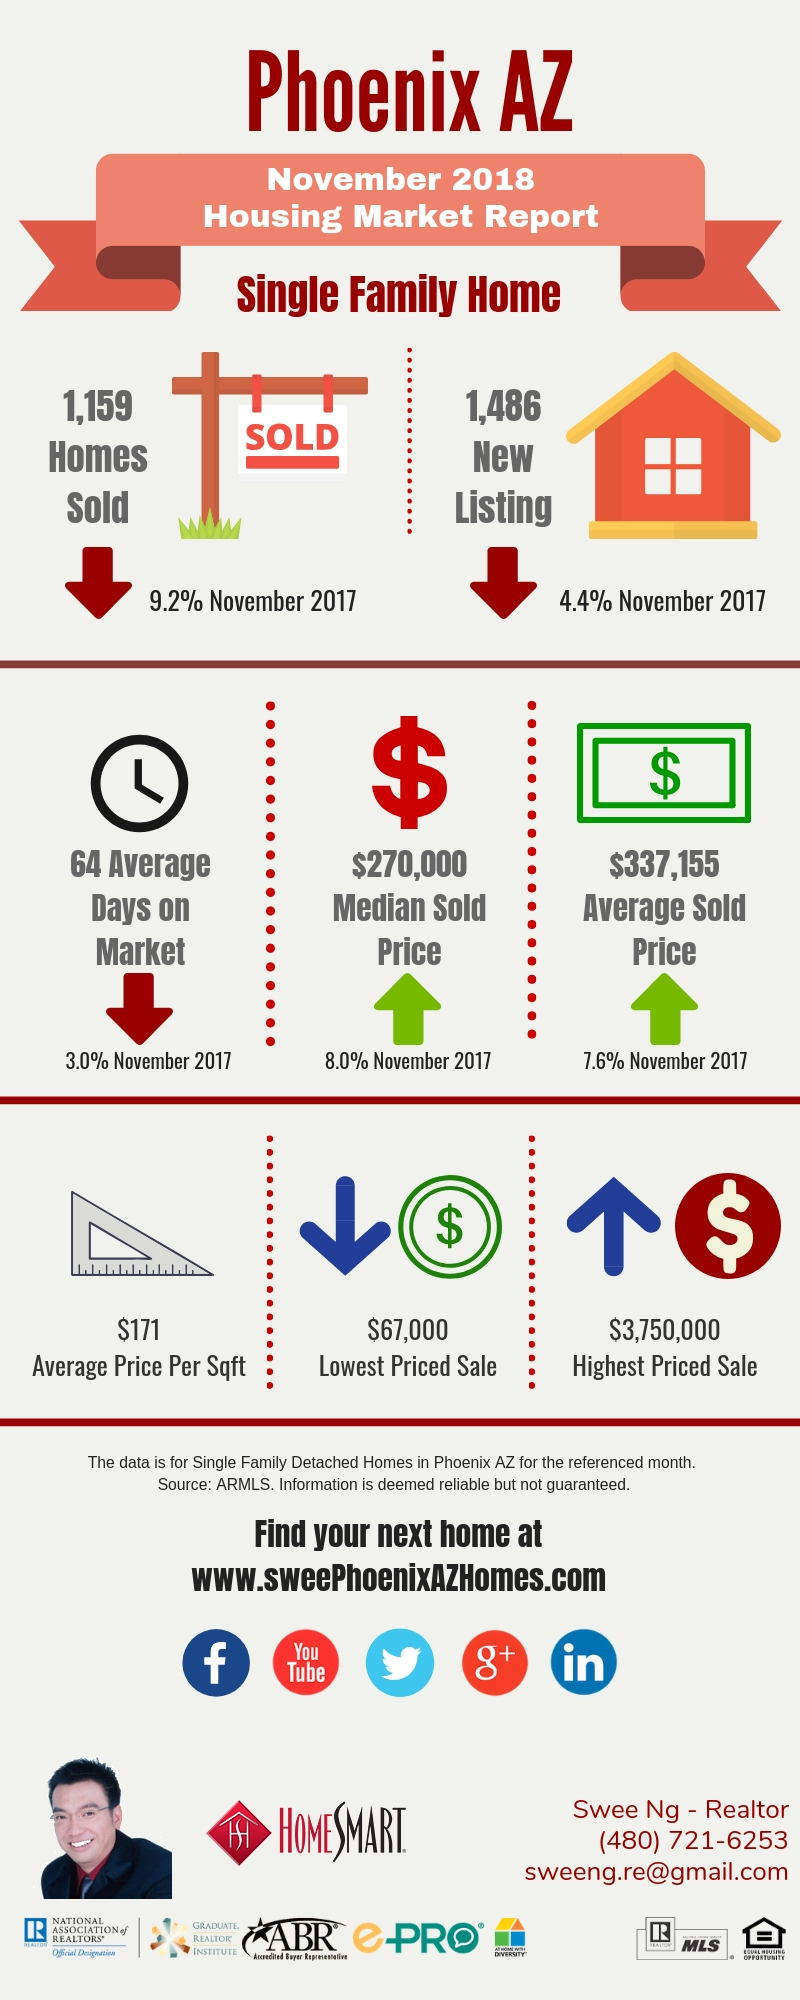 Phoenix Housing Market Update November 2018 and House Value by Swee Ng